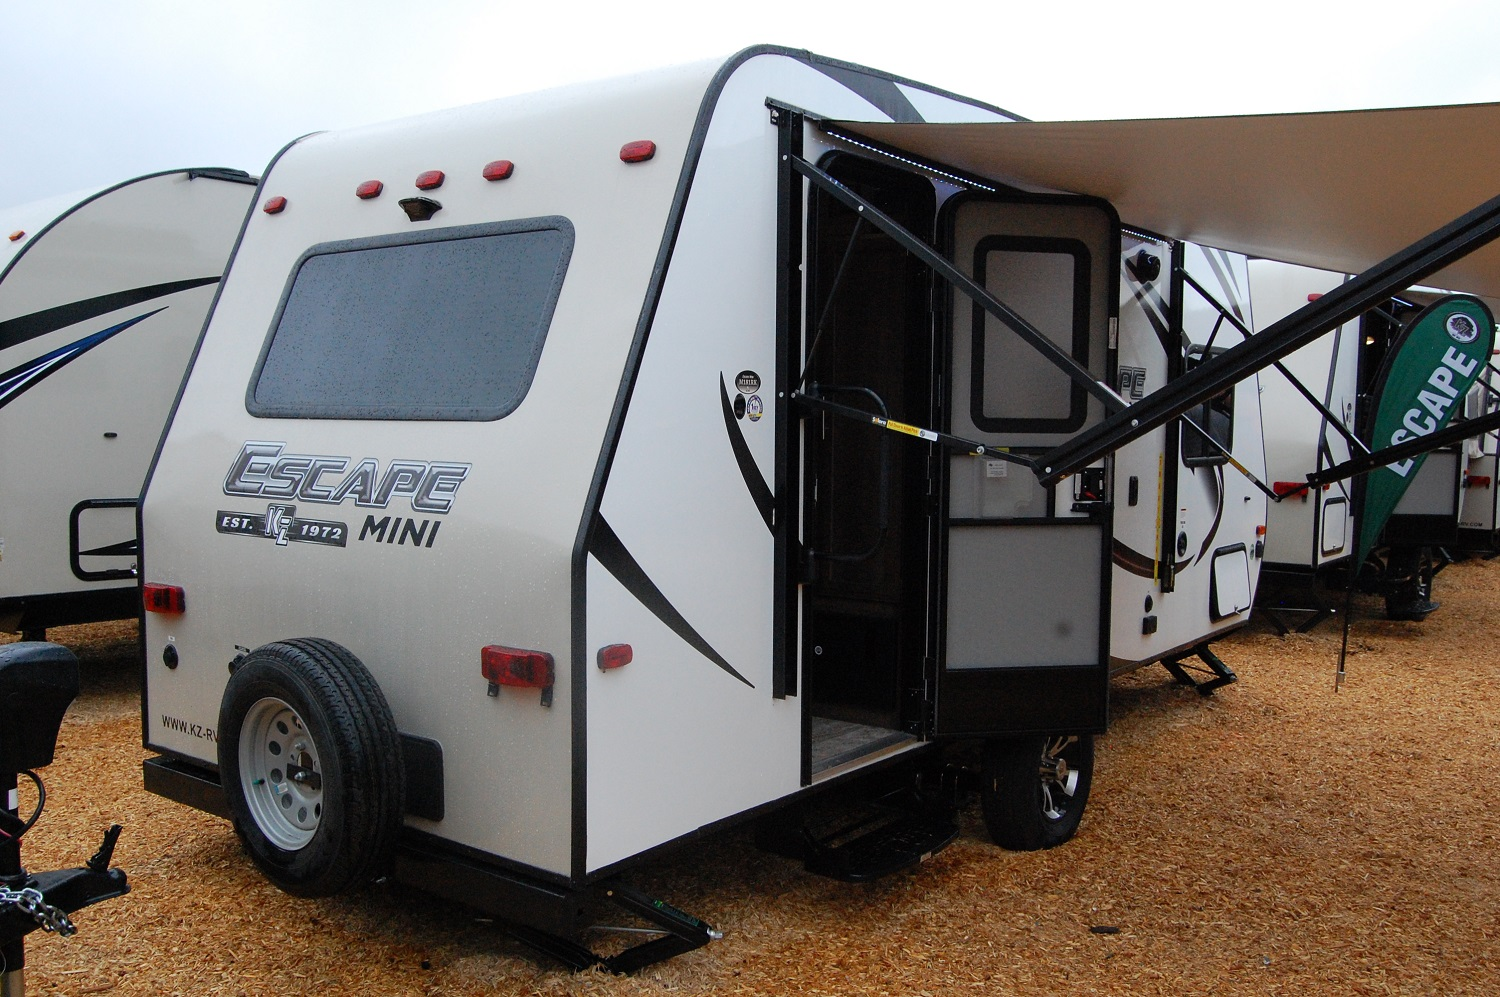 heartland rv | The Small Trailer Enthusiast